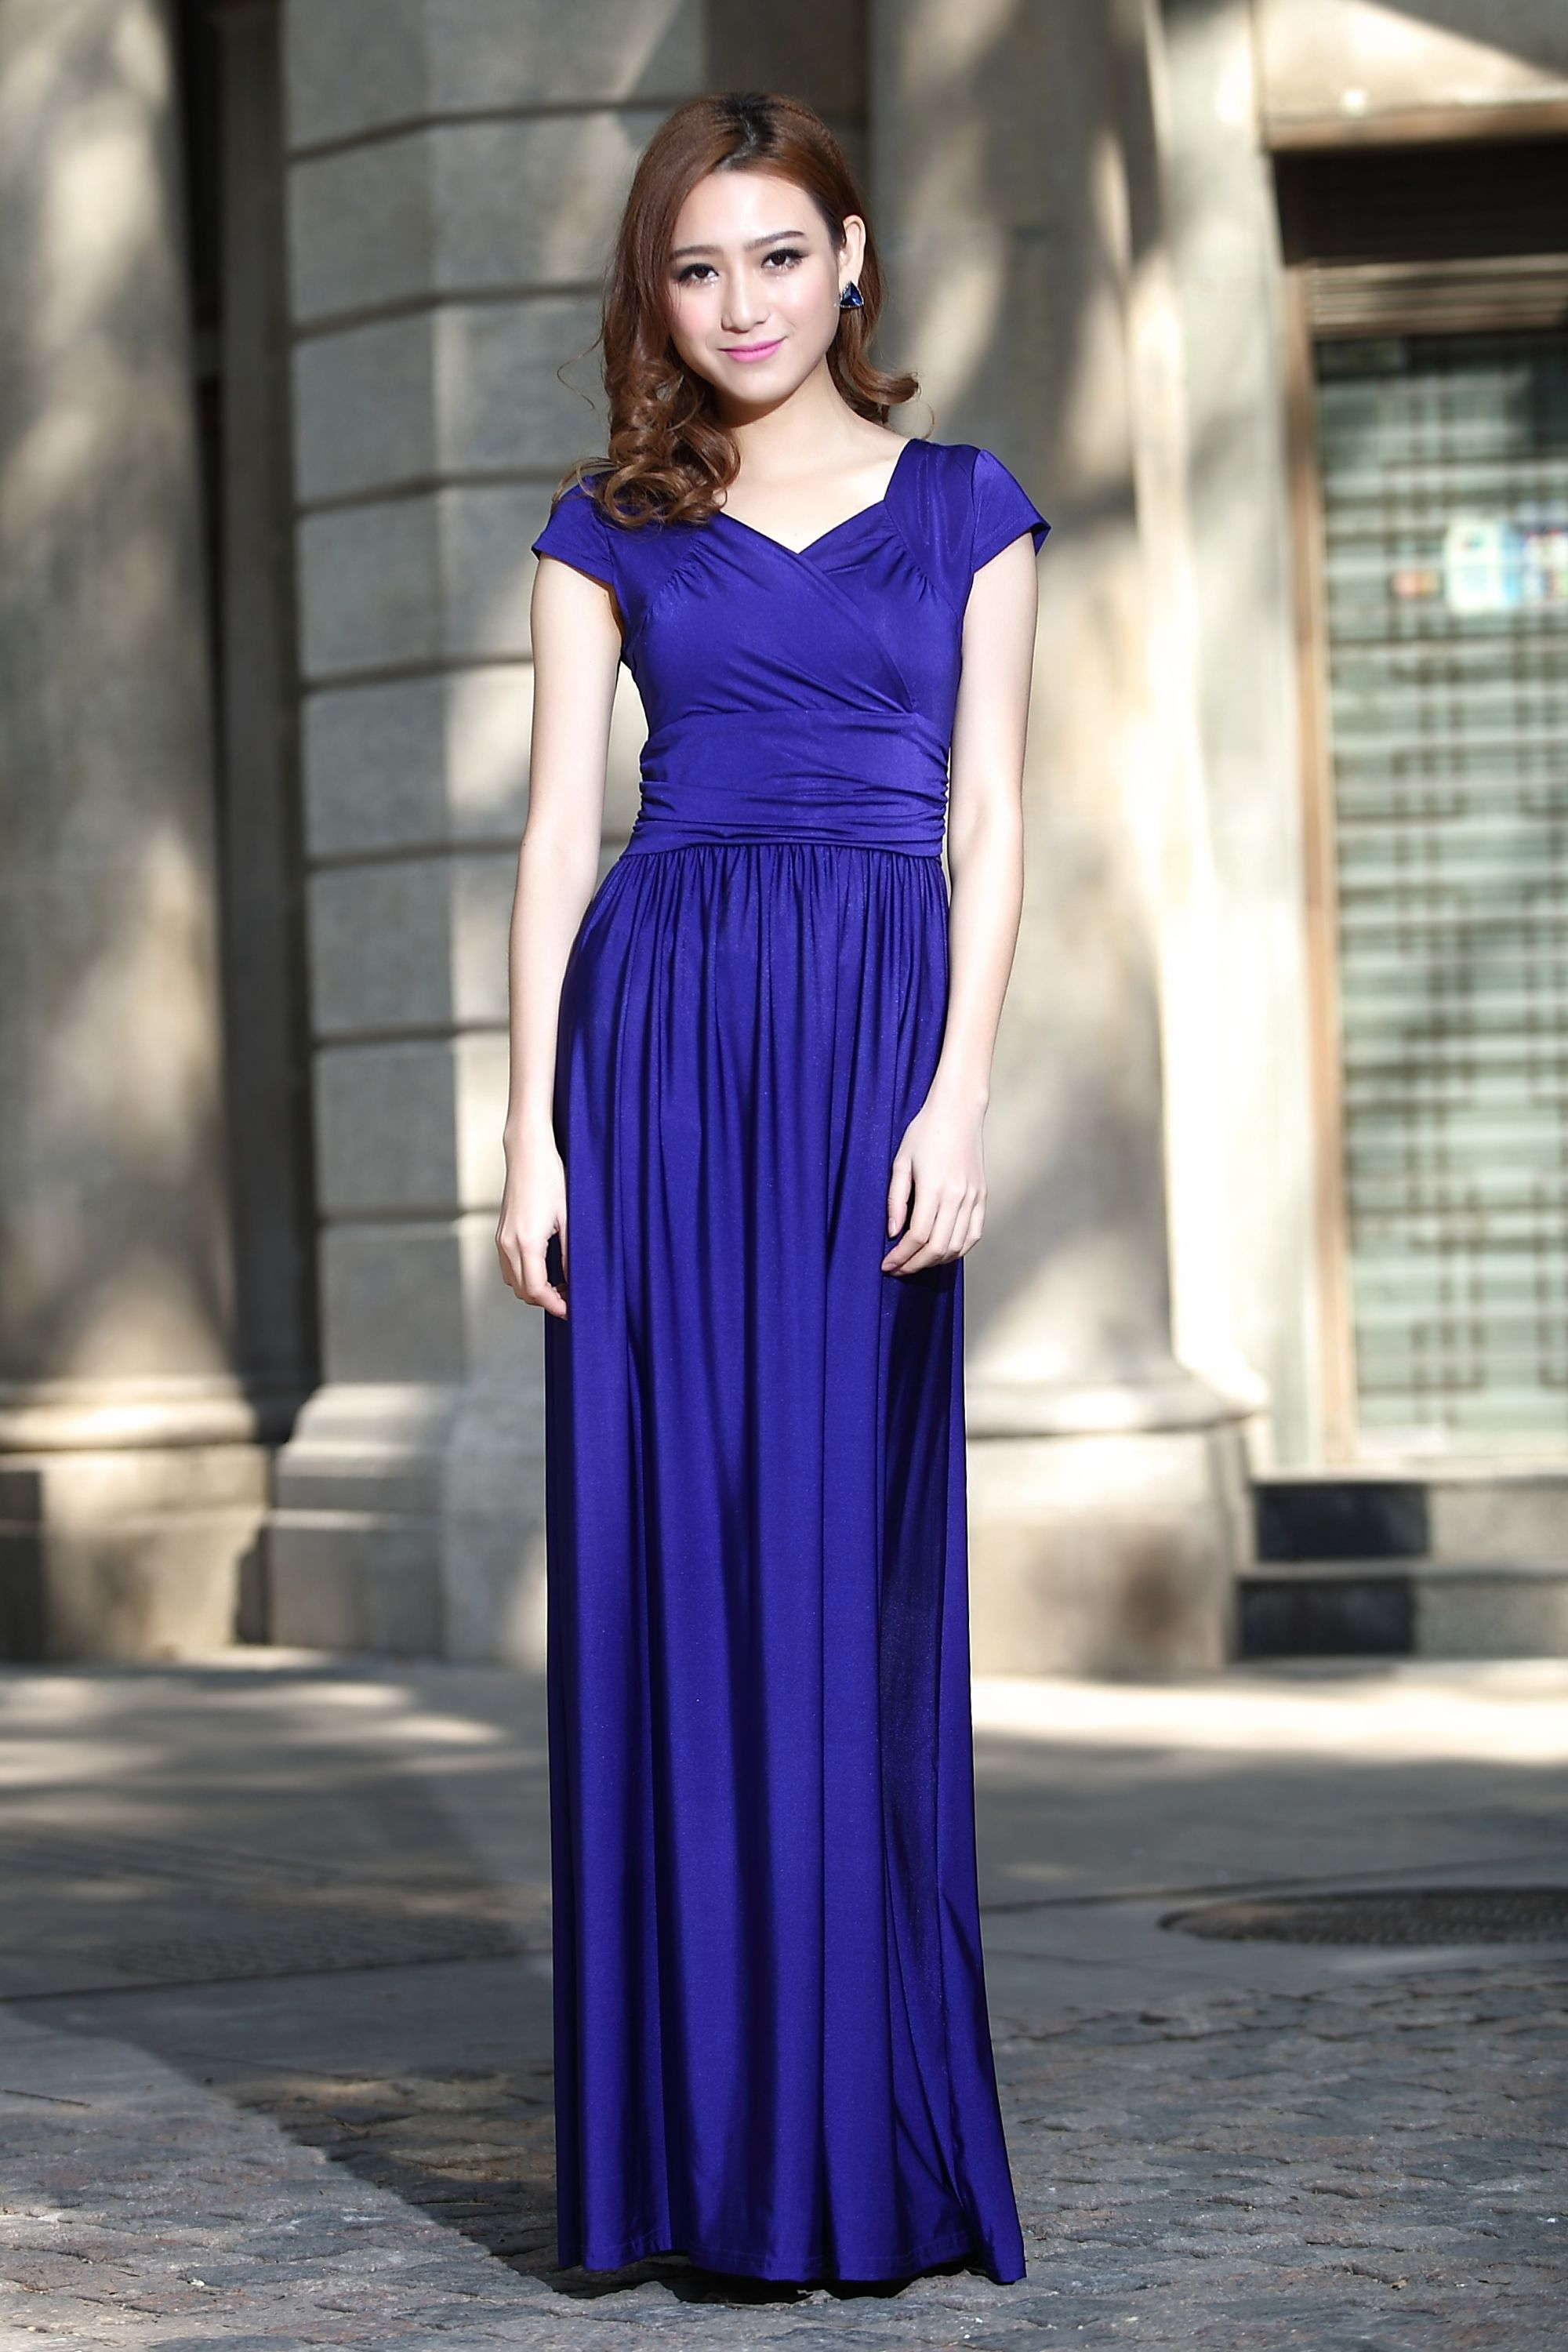 Royal Blue bridesmaid dress, evening prom dress, party dress, formal ...